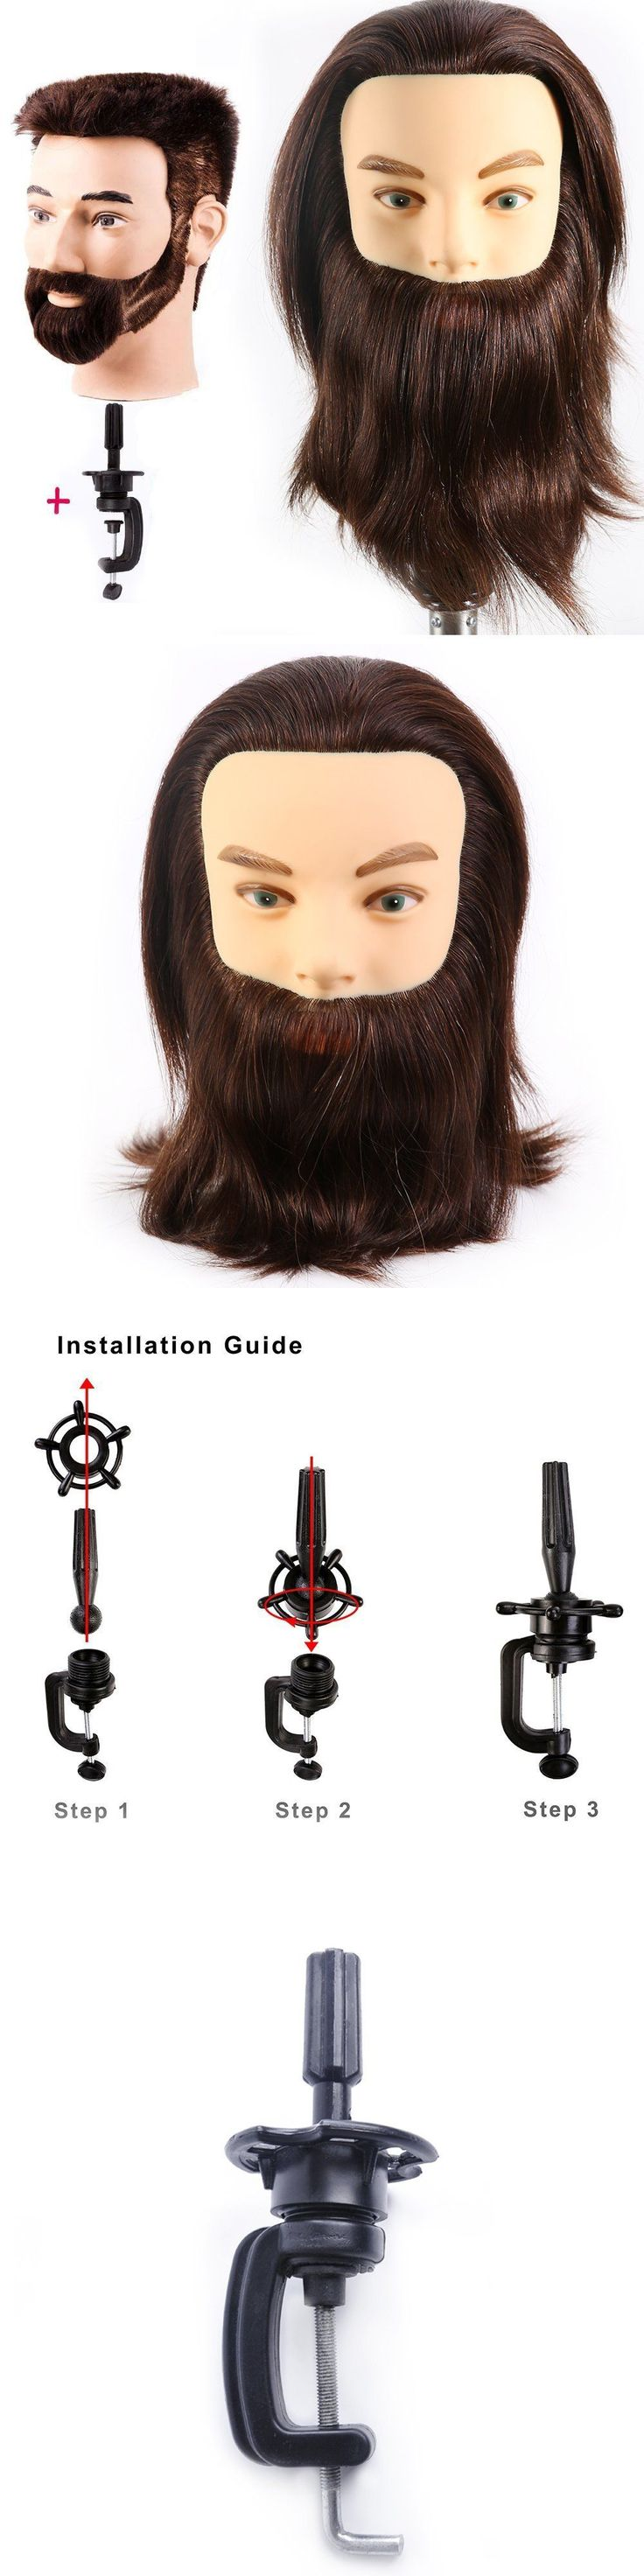 Hair and Makeup Mannequins: Male Mannequin Head 100% Human Hair Hairdresser Training Head Manikin Cosmetolog -> BUY IT NOW ONLY: $38.26 on eBay!  #website #investment #cosmetology #beauty #hair #celebrity #shots #cool #tricksandtips #funny #card #android #mind #magic #smoking #steak #knitting #money #study #camping #packing #kissing #beef #makeup #fidgetspinner #travel #cleaning #breastfeeding #moving #photography http://tipsrazzi.com/ppost/344384702745959659/